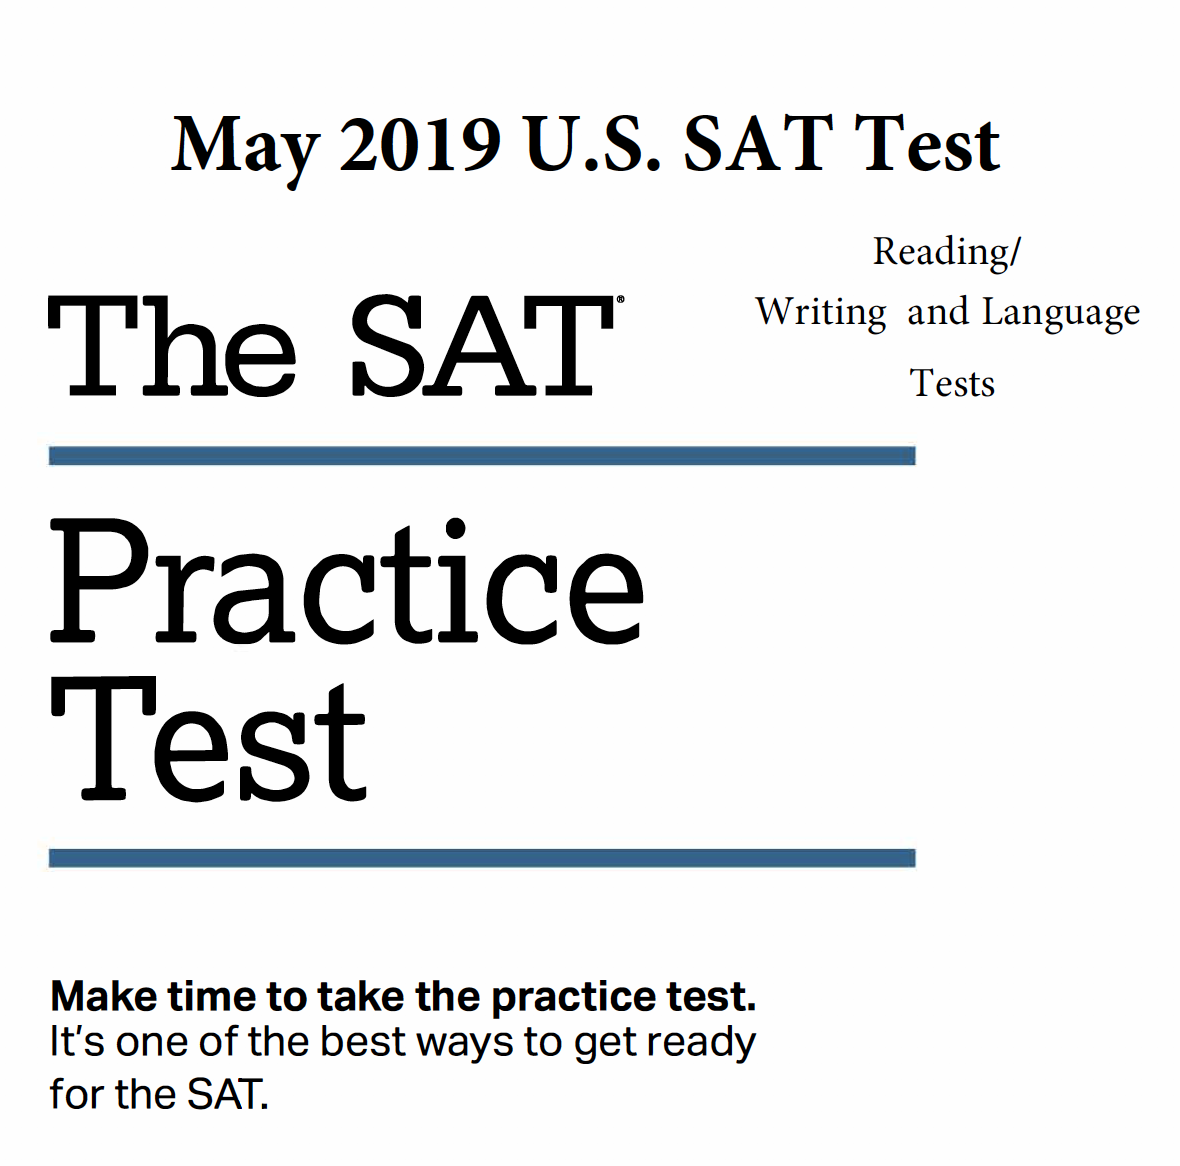 May 2019 SAT Test - Reading - Writing and Language Tests